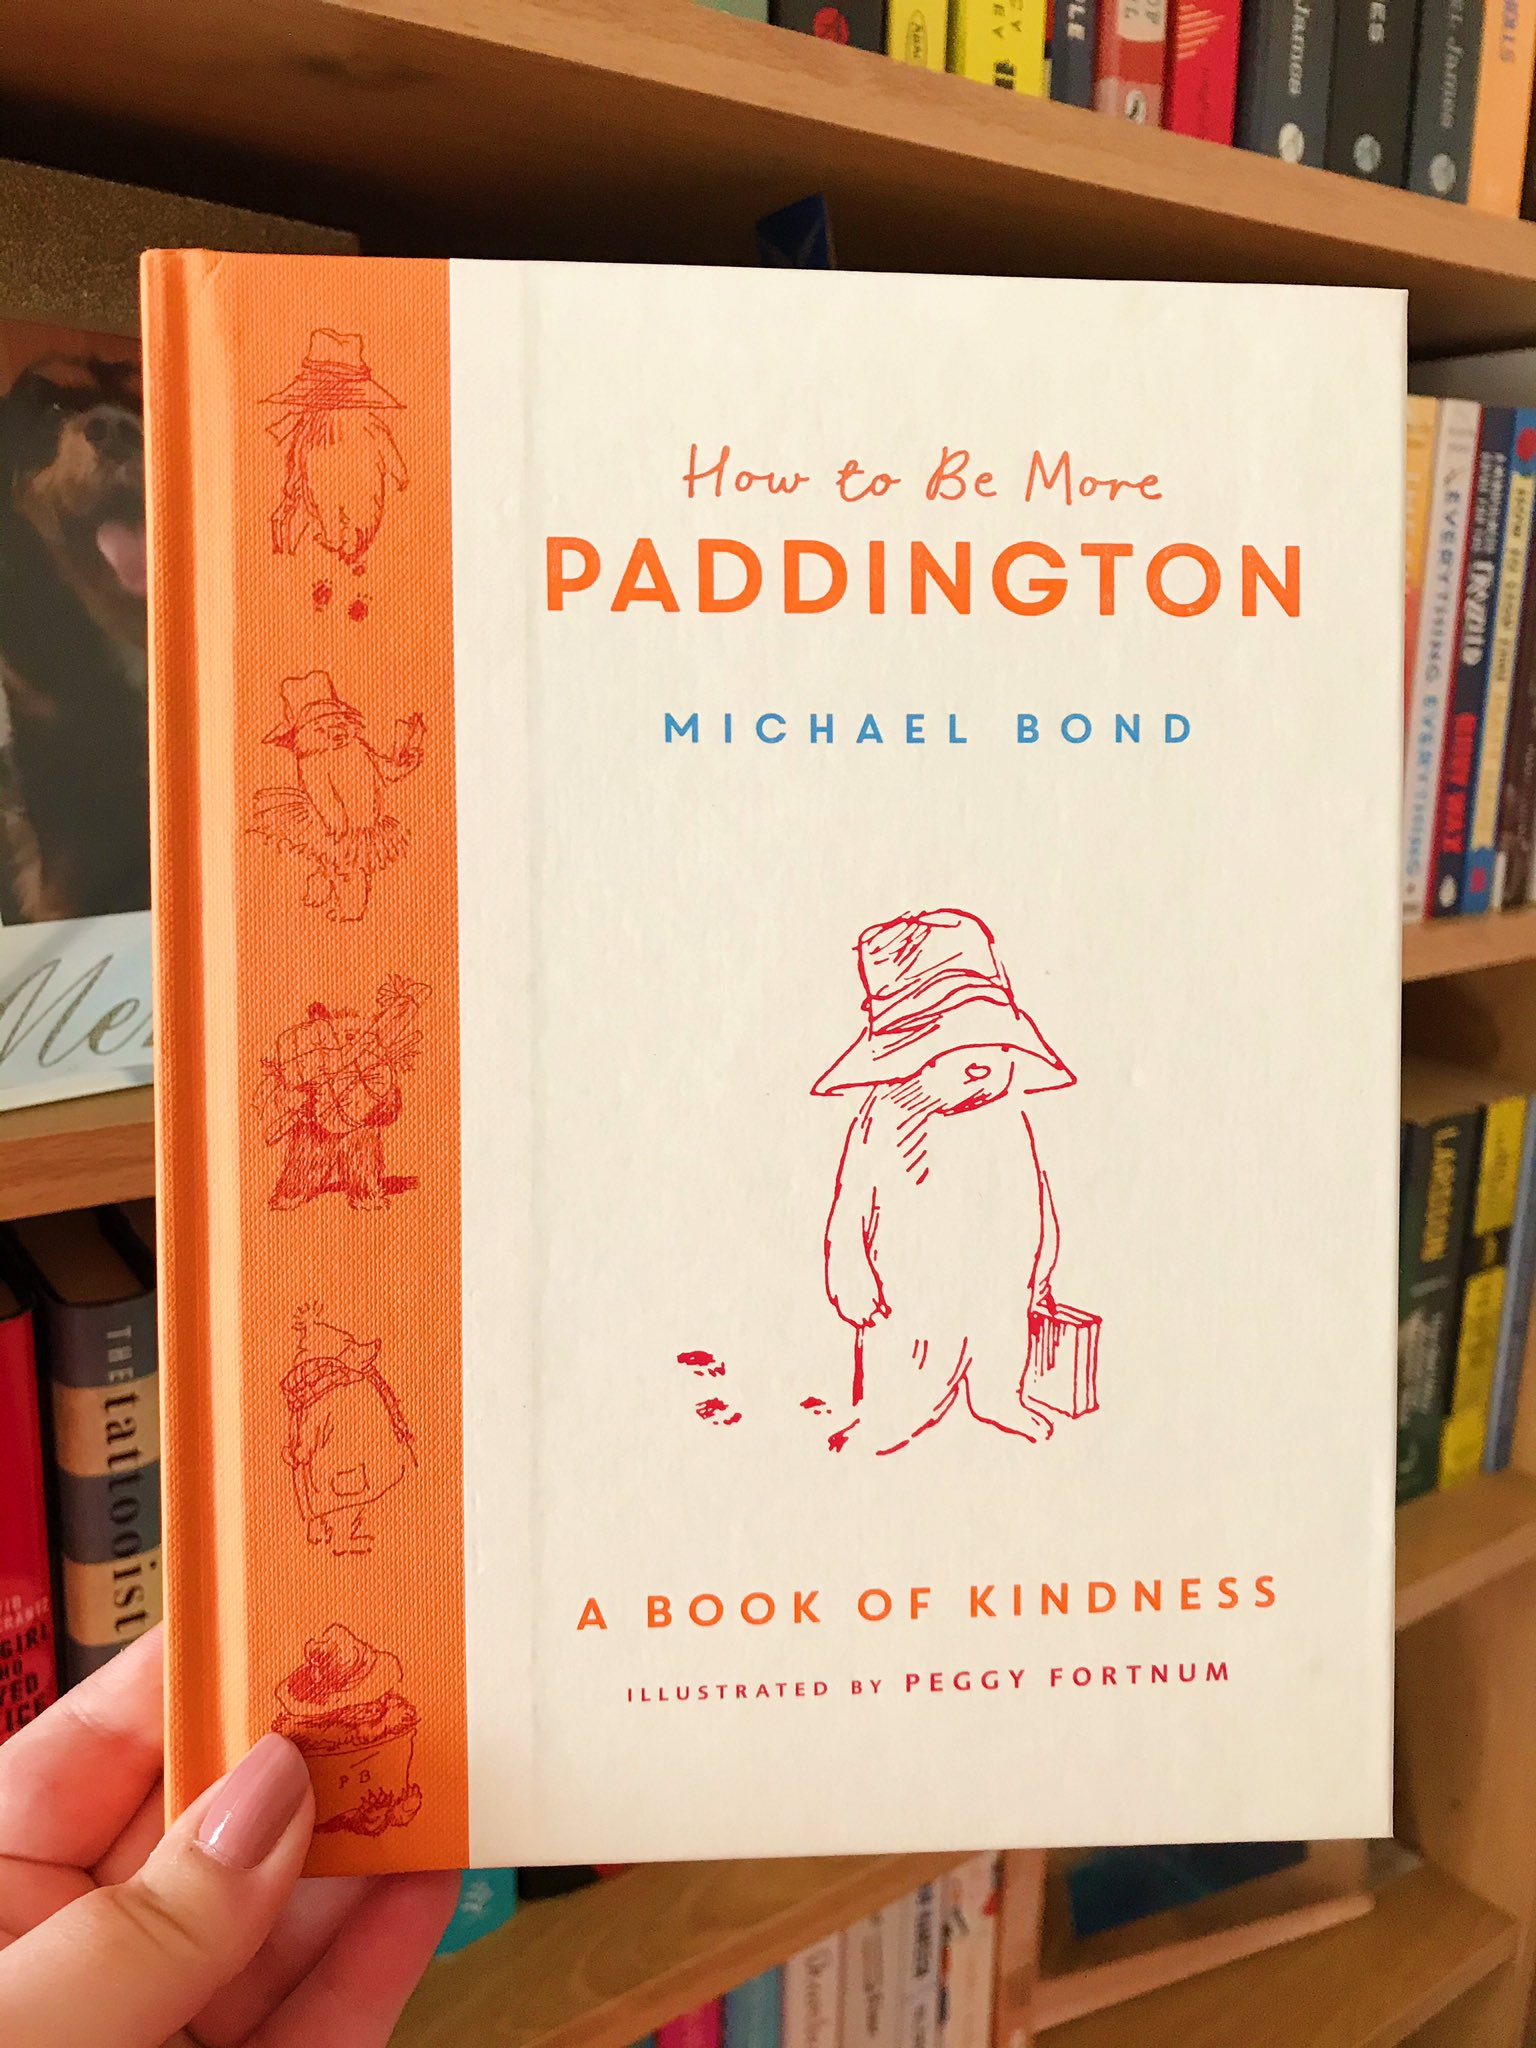 How To Be More Paddington by Michael Bond held up in front of bookshelf